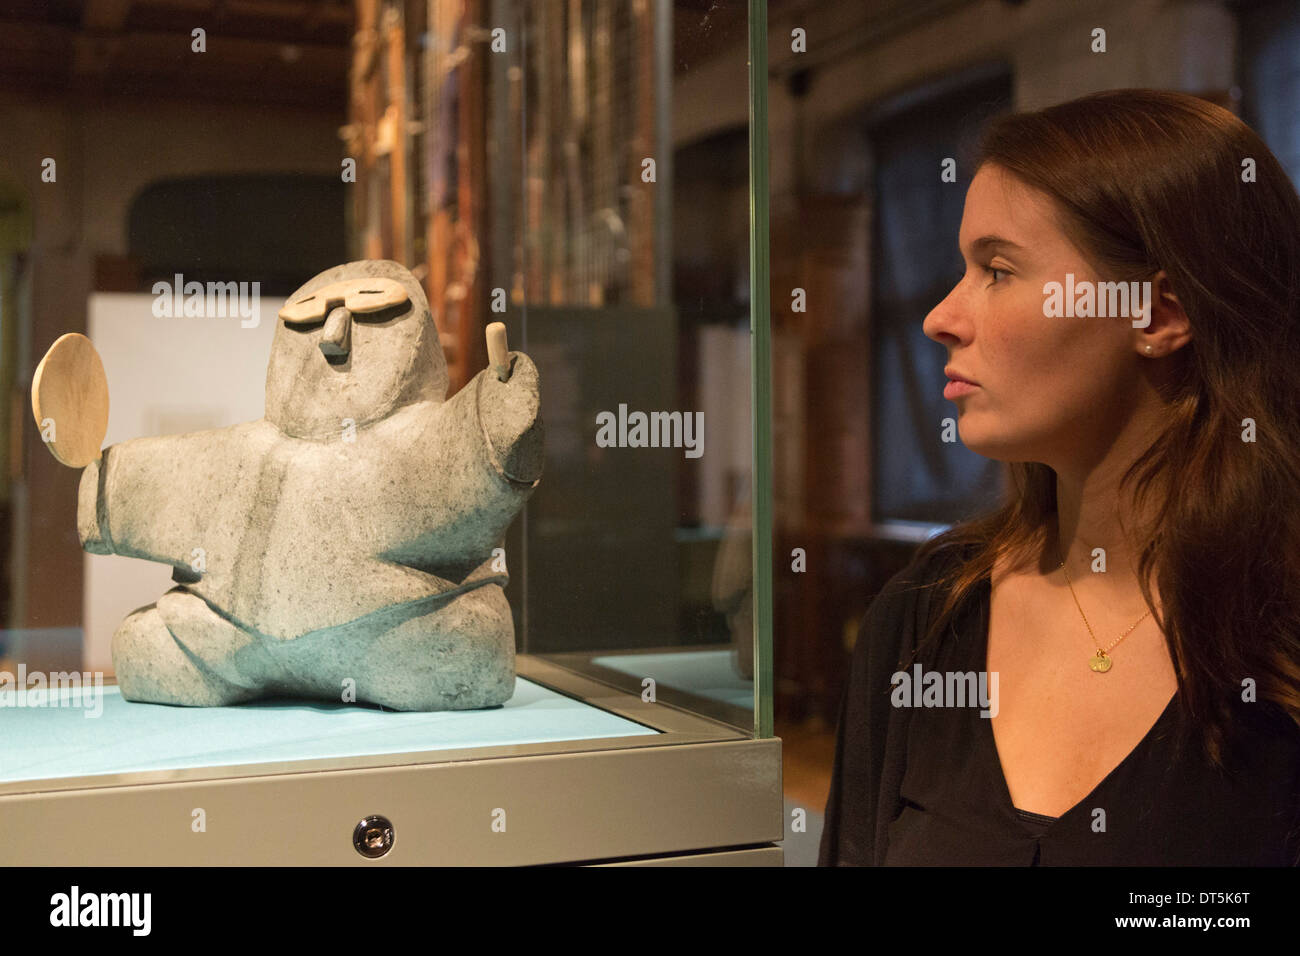 Exhibition 'Discoveries - Art, Science & Exploration' from the University of Cambridge Museums, Two Temple Place, London - Stock Image